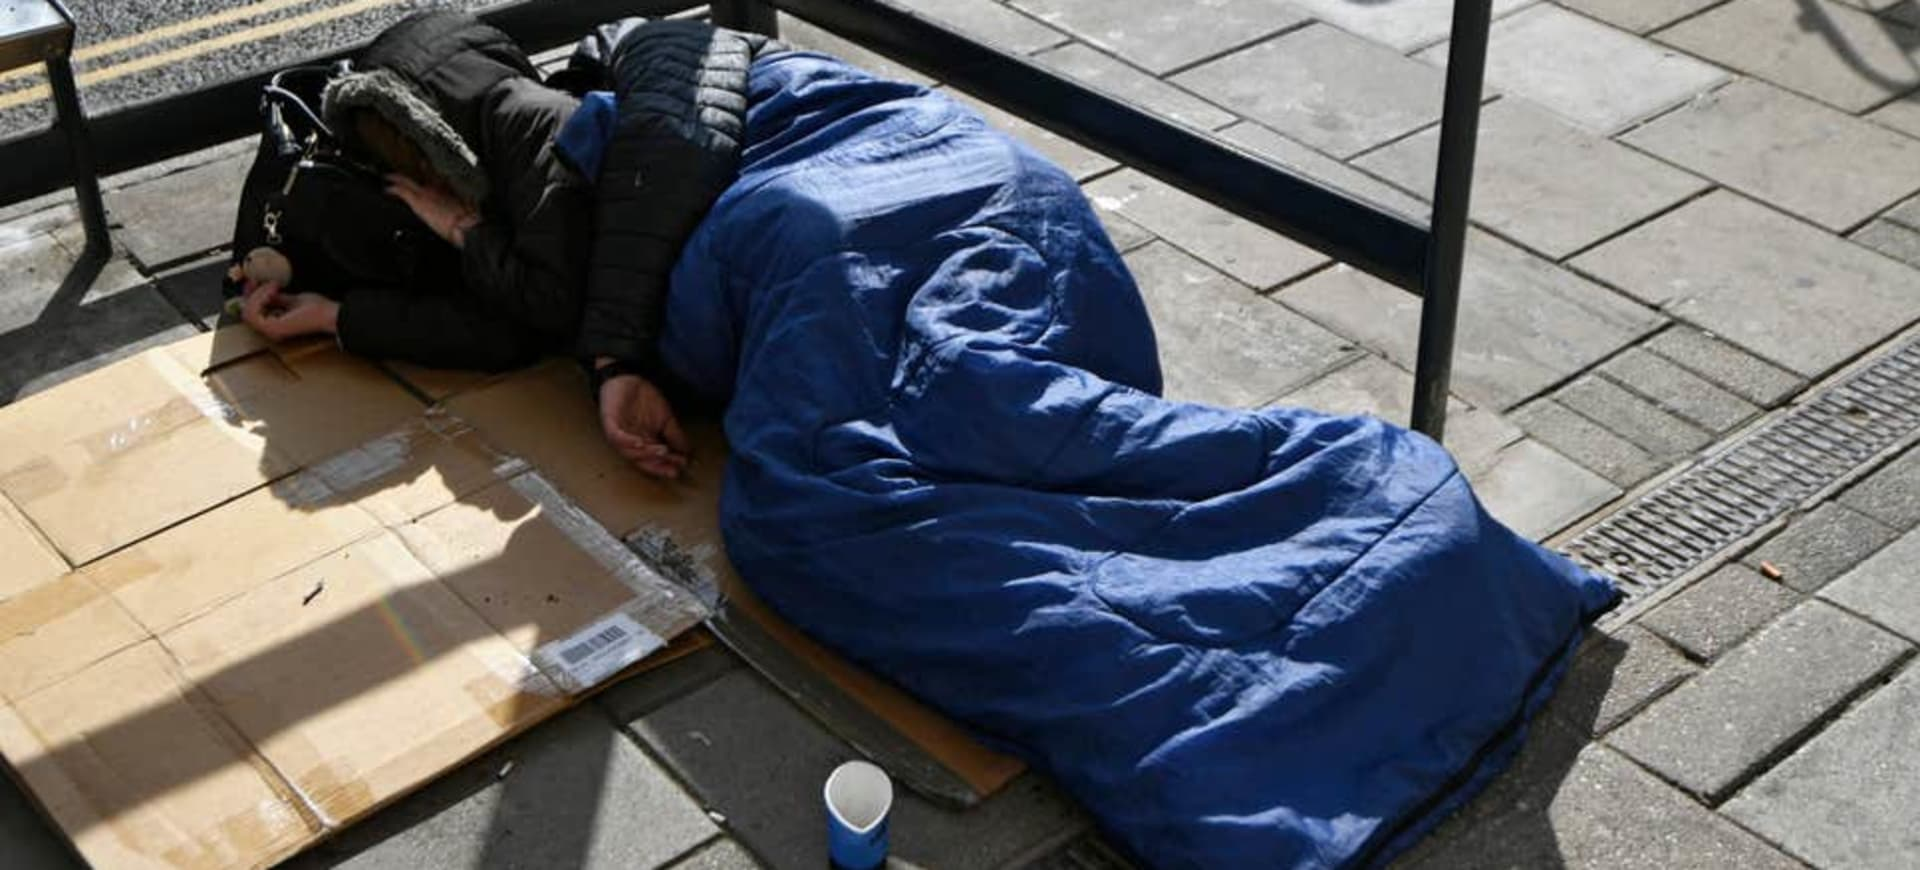 Ministers urged to repeal law that makes rough sleeping illegal following rise in arrests